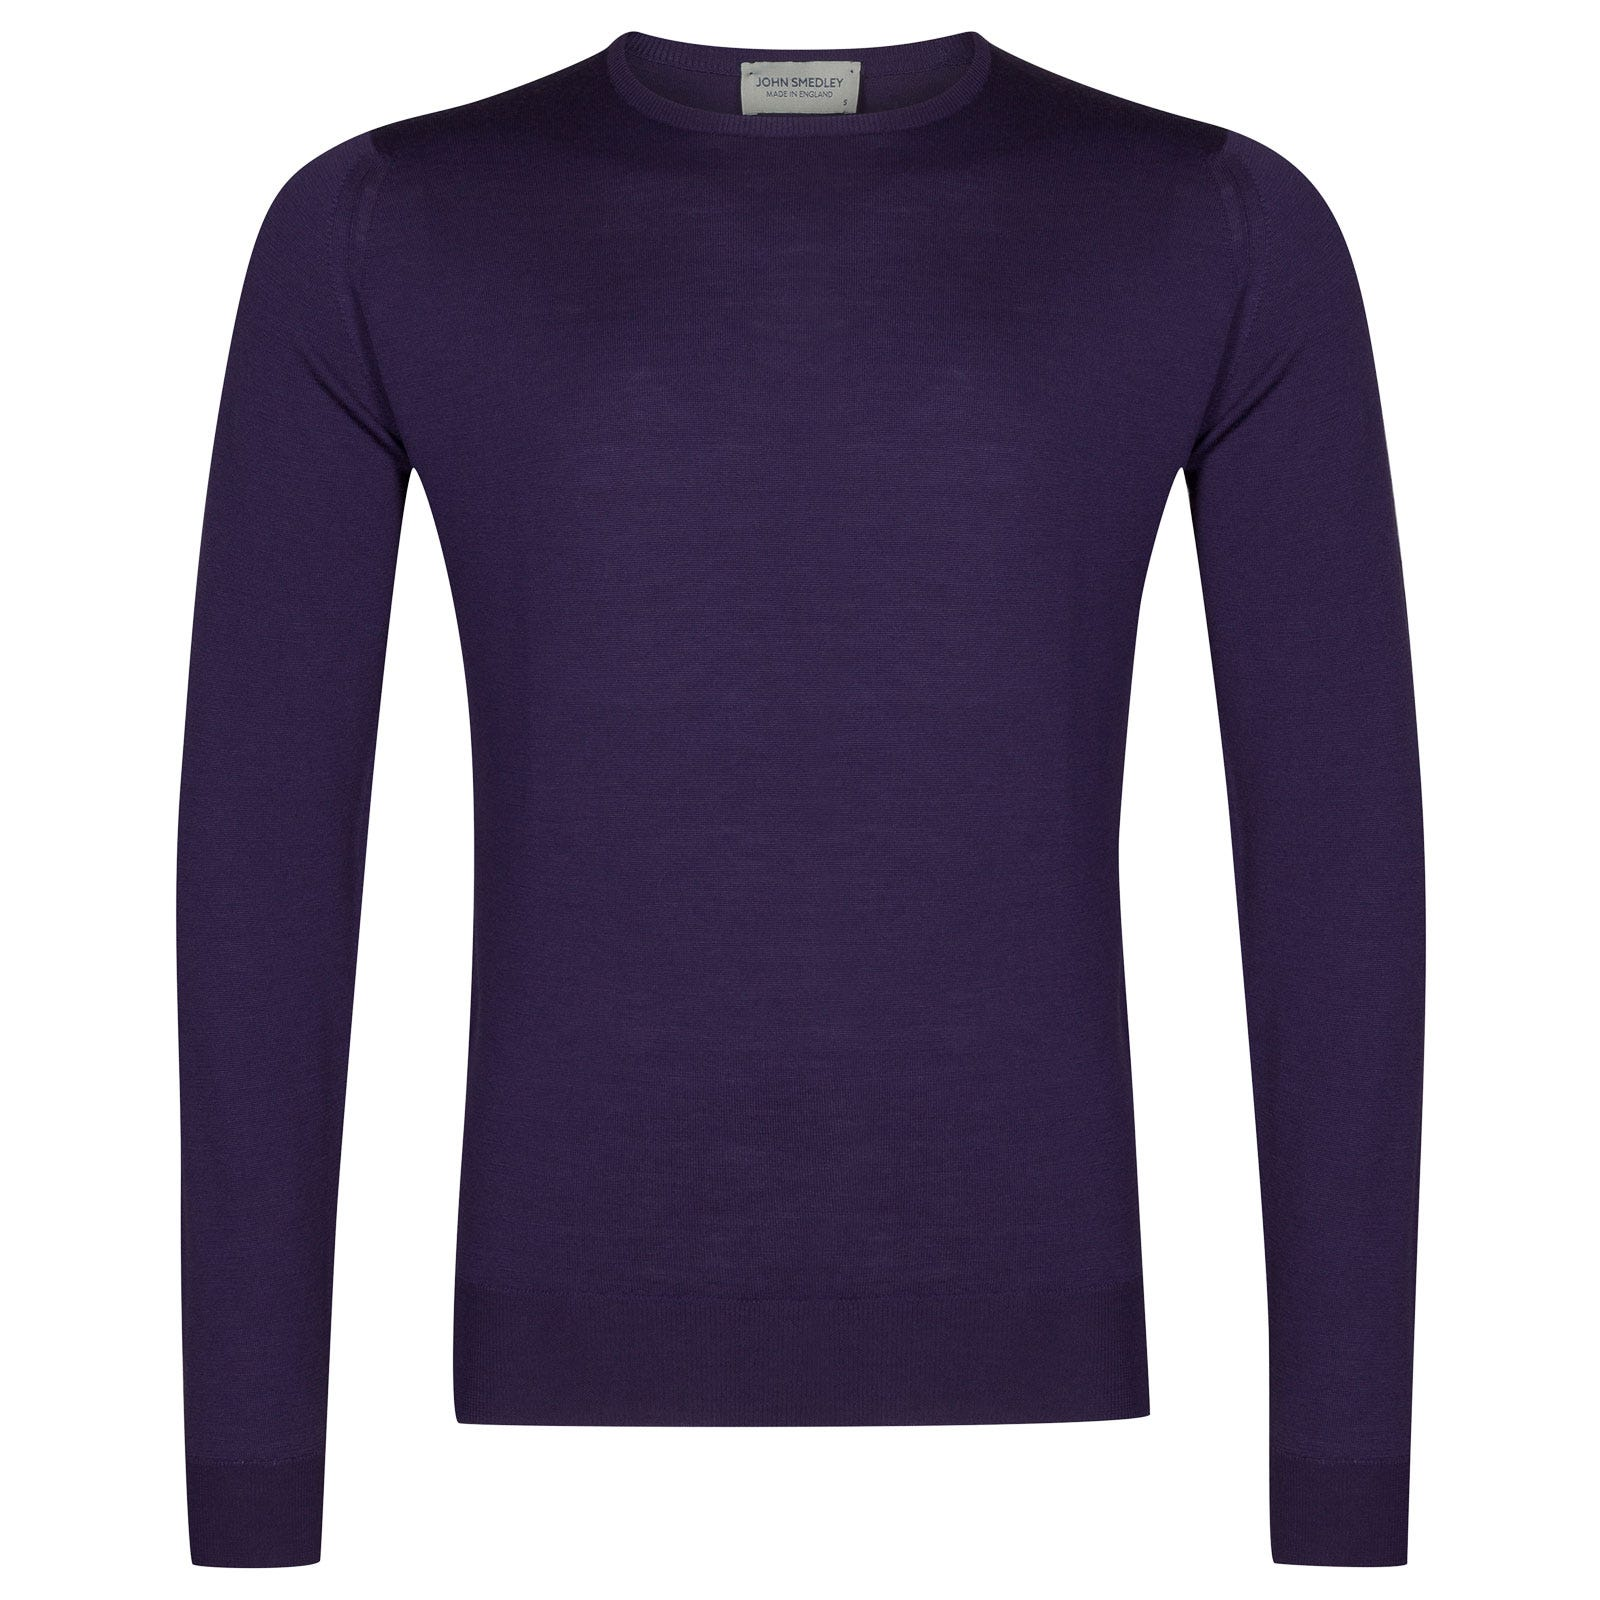 John Smedley lundy Merino Wool Pullover in Elderberry Purple-L